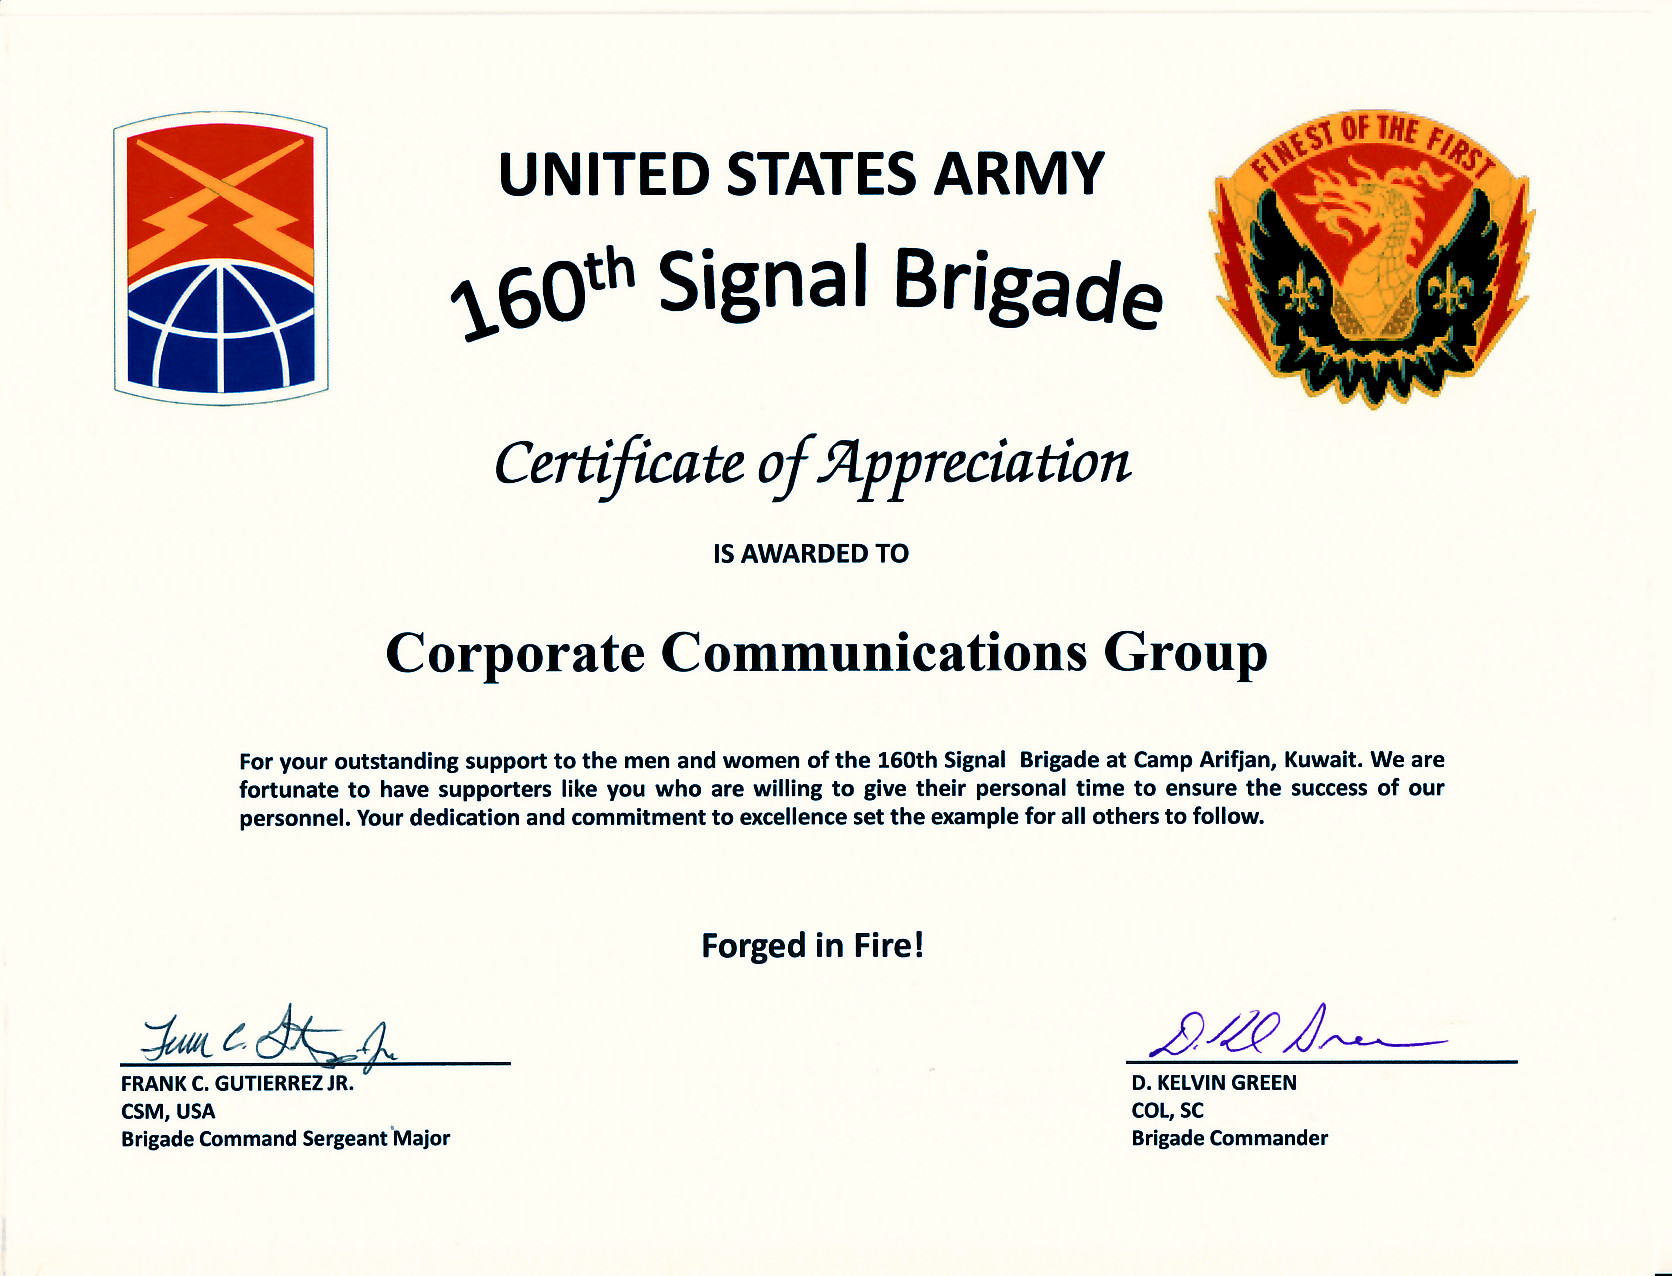 Army Certificate Of Appreciation Ccg Receives Certificate Of Appreciation From U S Army